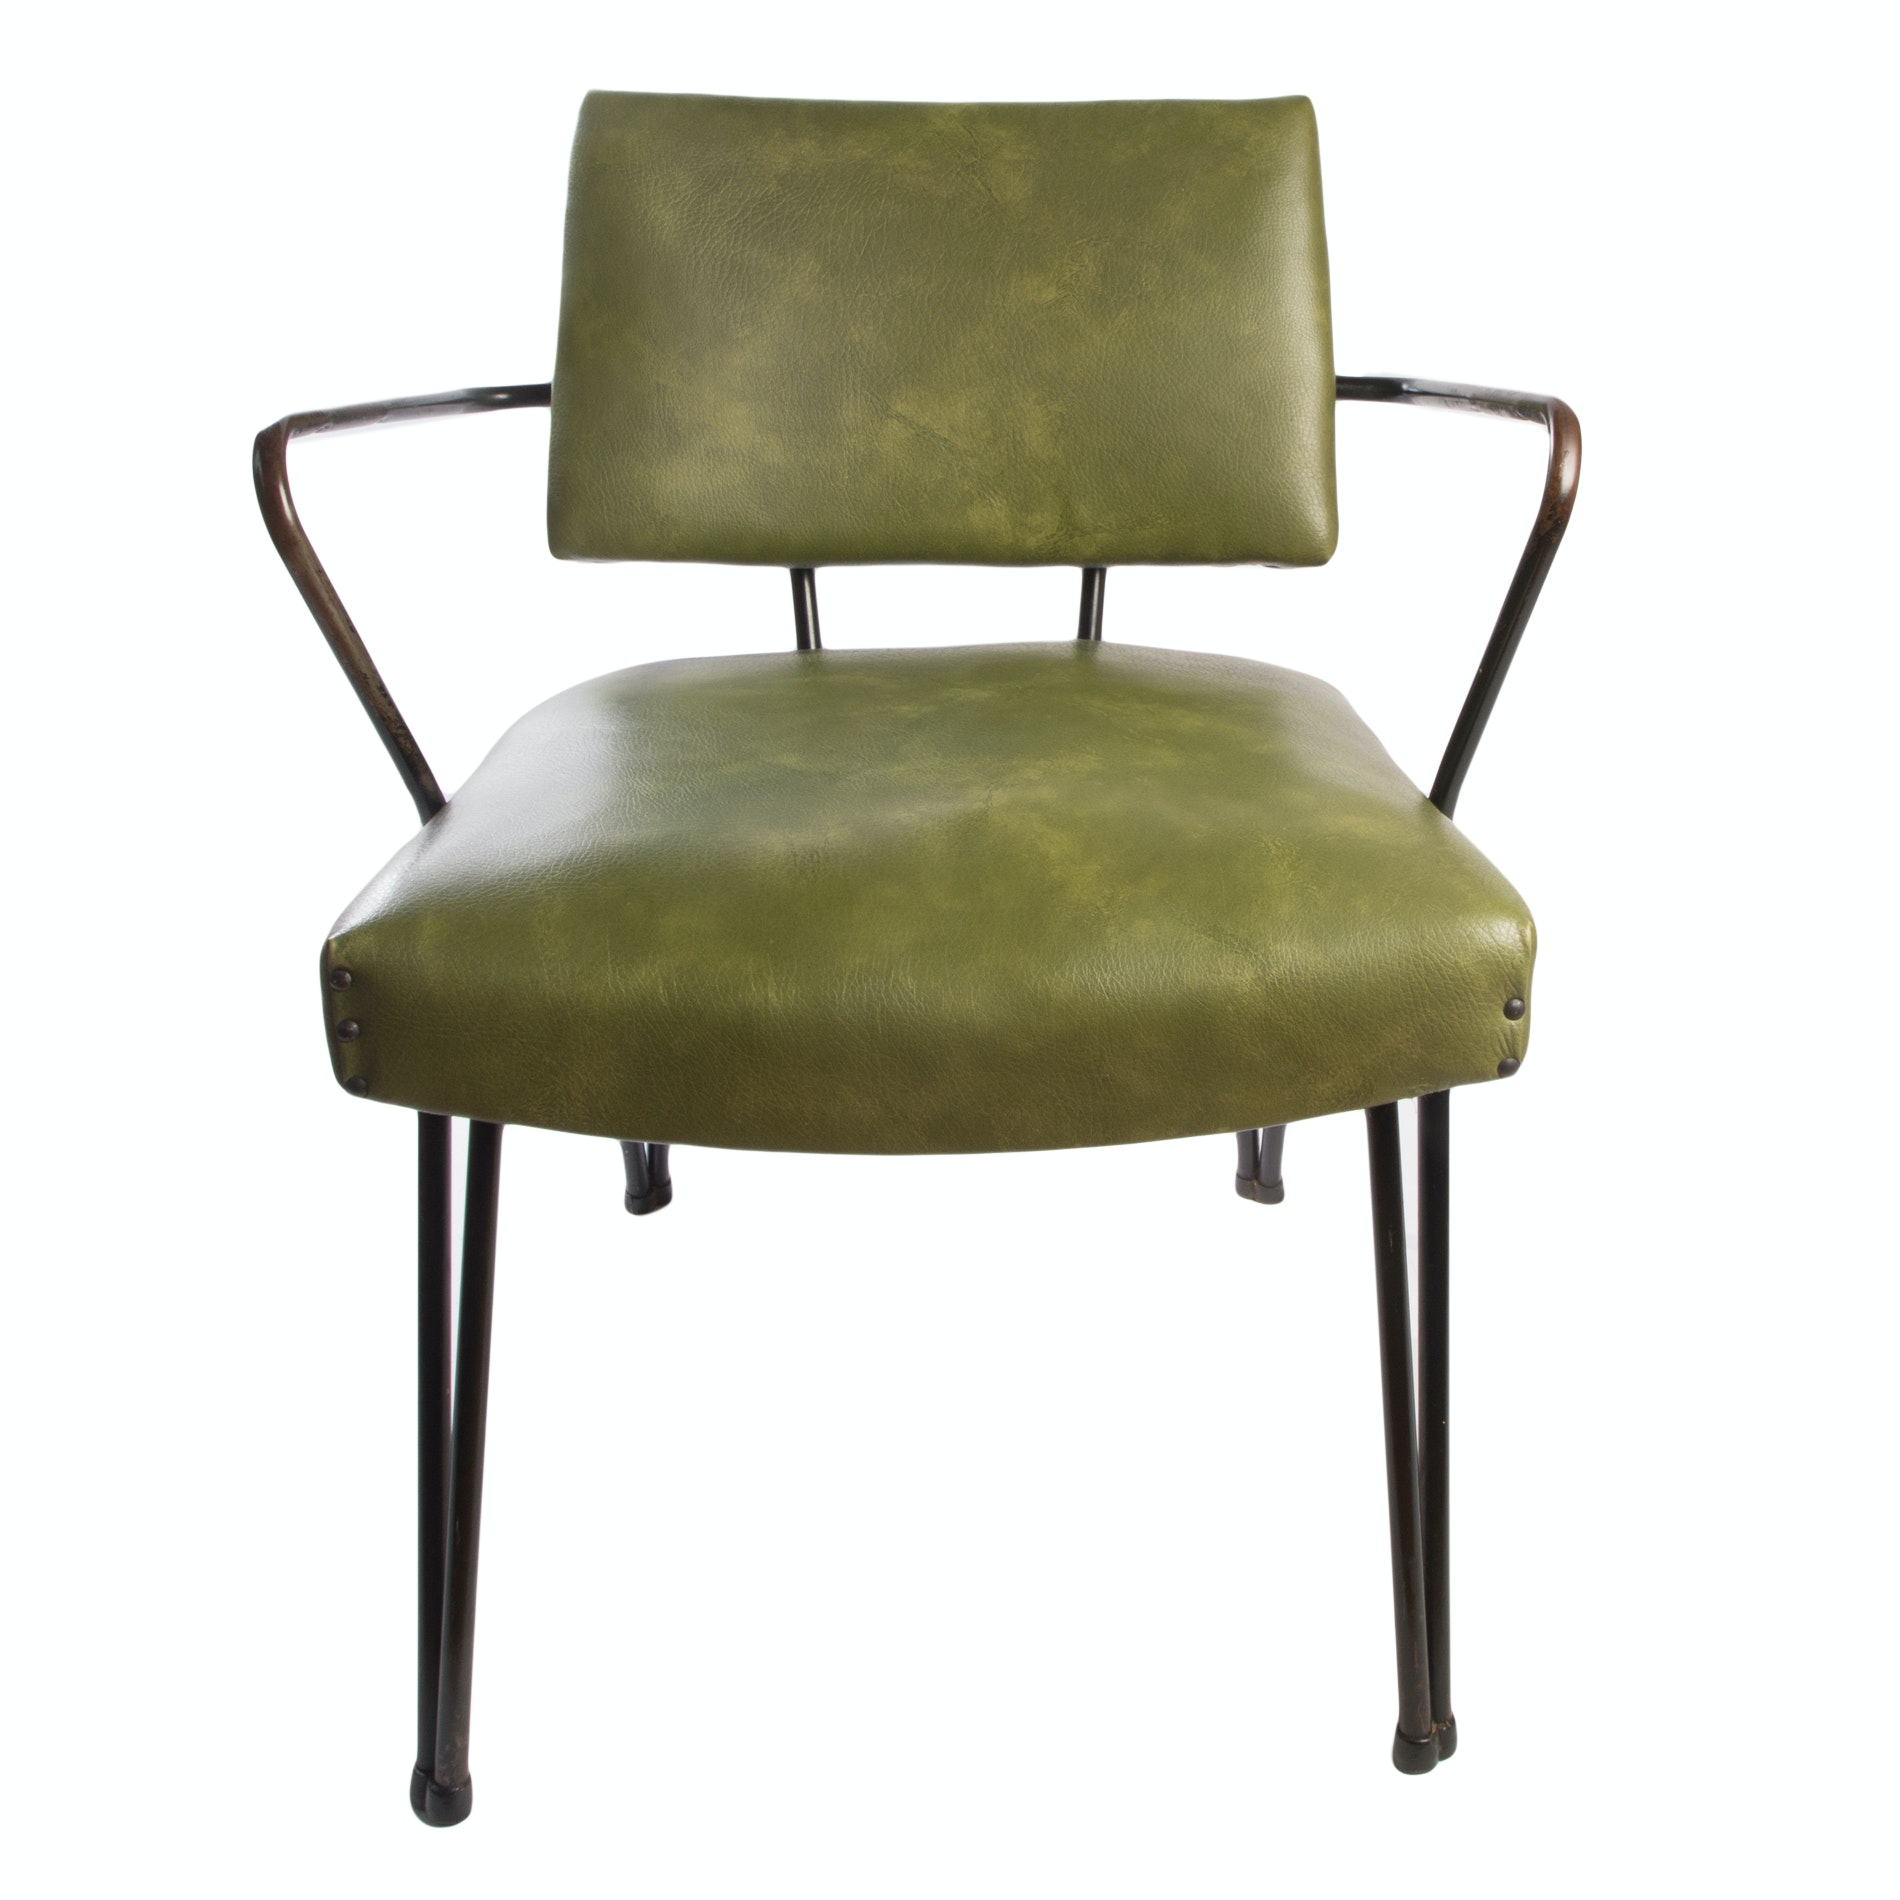 Mid Century Modern Chair by the Douglas-Eaton Chair Company